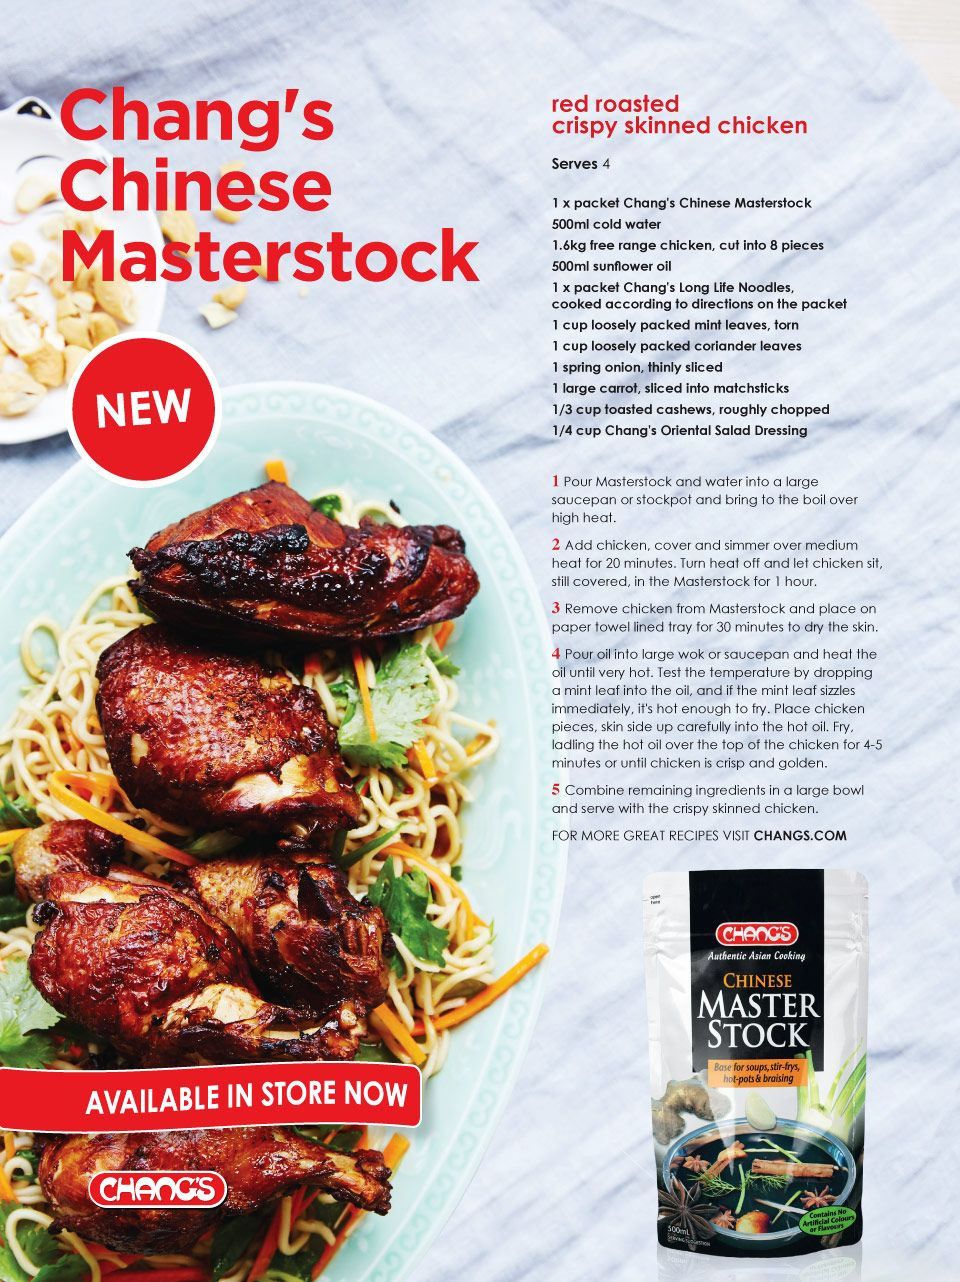 Woolworths fresh magazine get recipe food ideas from woolworths fresh magazine woolworths magazineschinesemenufood ideasfreshjournals magazine forumfinder Image collections